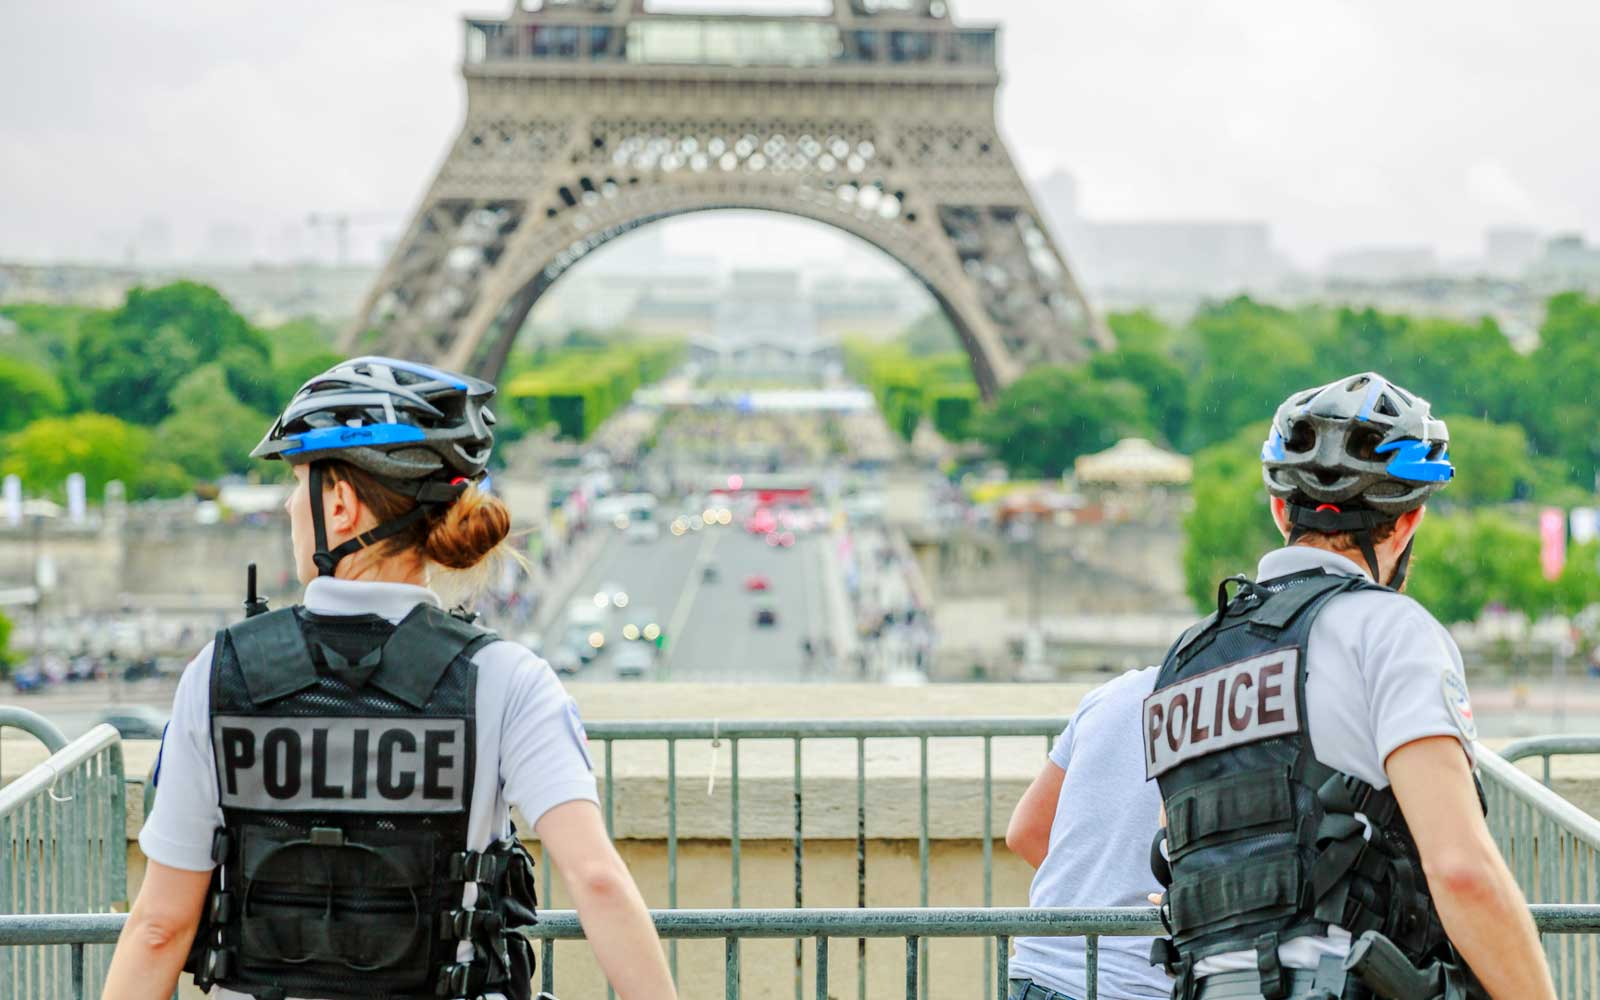 Police on patrol near Eiffel Tower in Paris, France